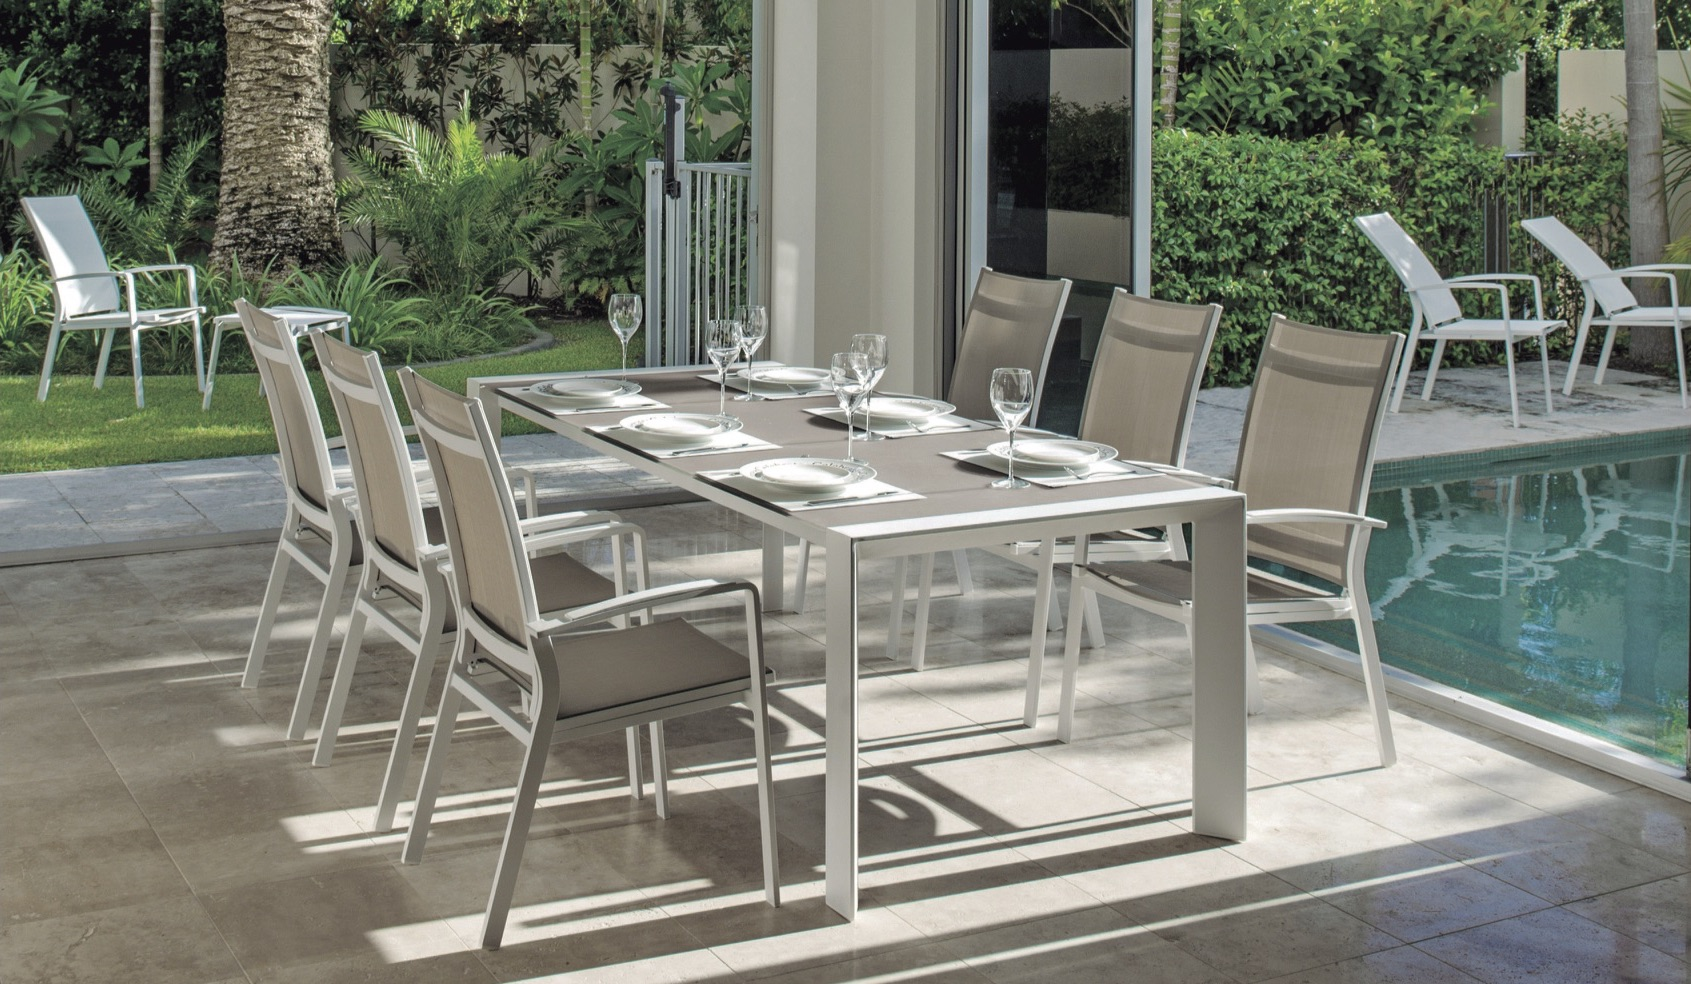 Alchemy Dining Table Modern Gl Extendable Teak All Weather Batyline Aluminum Contract Hospitality Outdoor Furniture 2